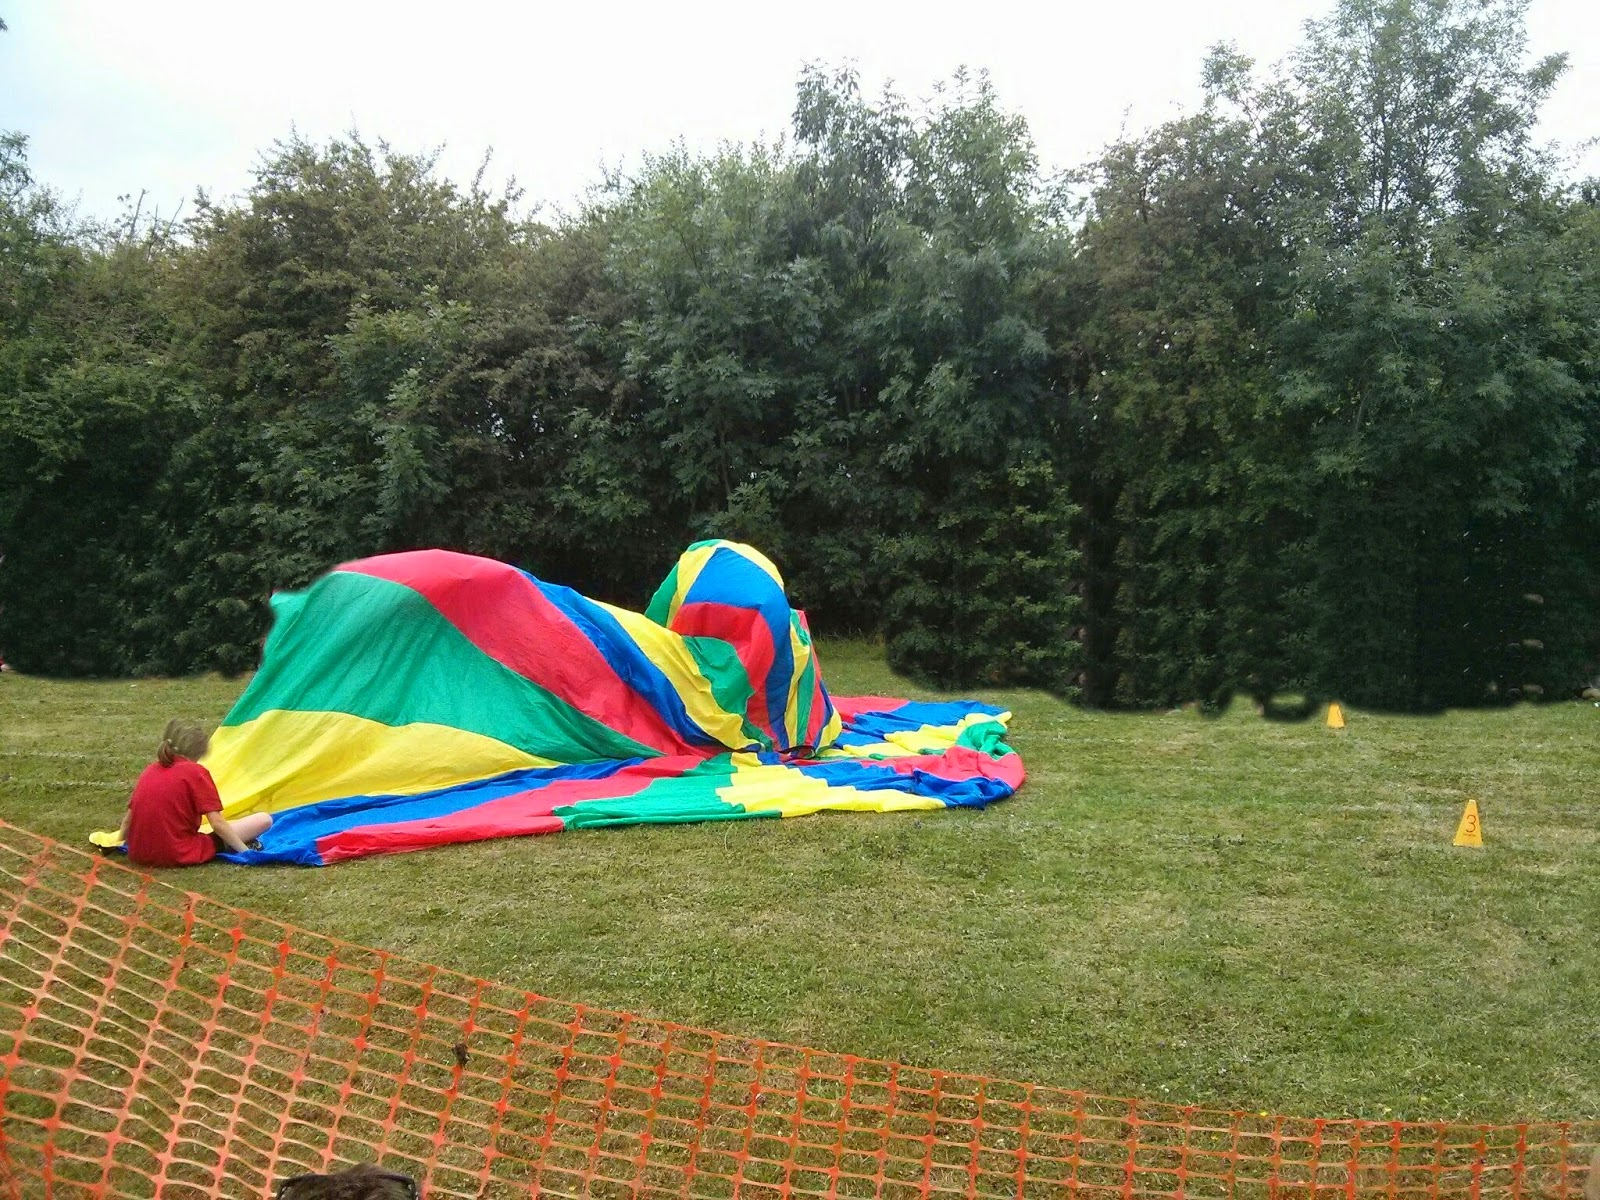 Top Ender in a parachute on Sports Day